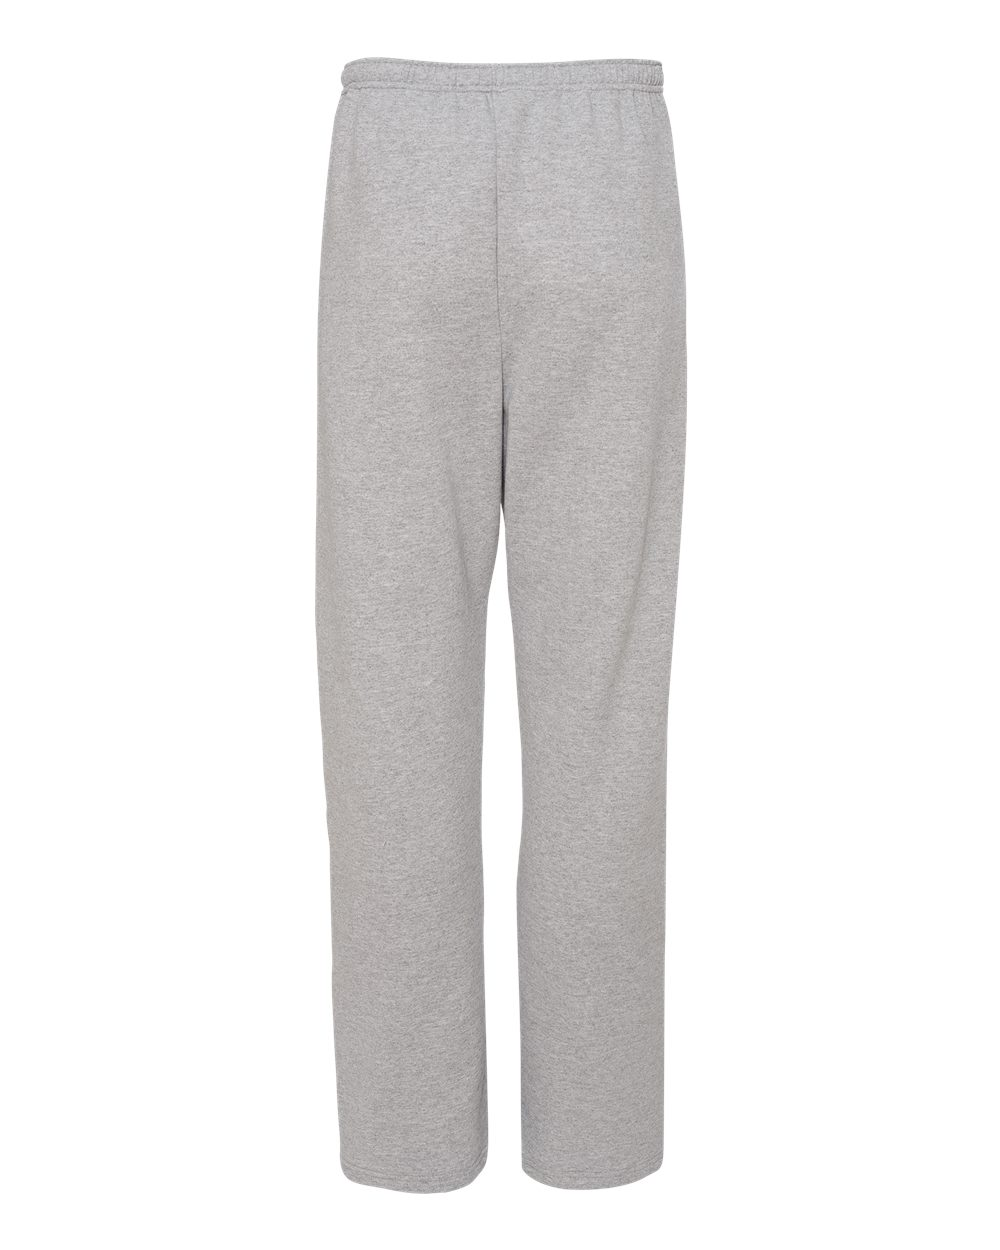 JERZEES-Mens-NuBlend-Open-Bottom-Sweatpants-with-Pockets-974MPR-up-to-3XL thumbnail 7